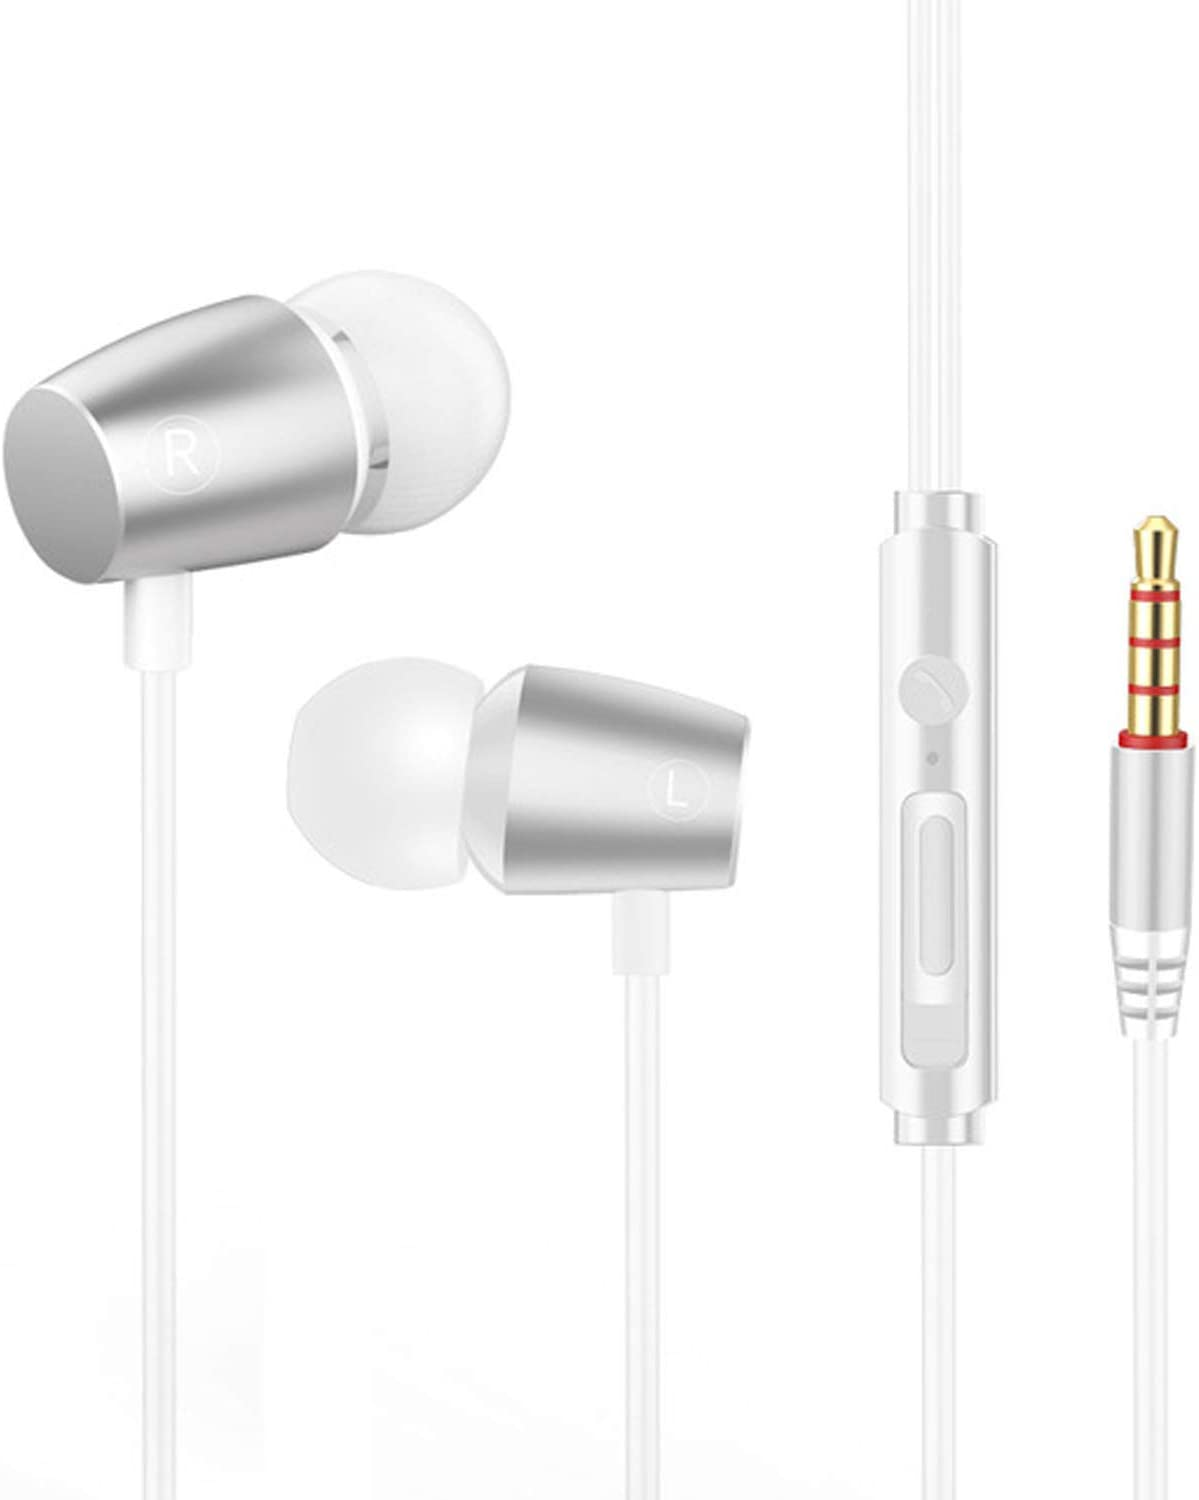 Earbuds, Wired Earphones with Microphone and Volume Control Stereo 3.5mm in-Ear Headphones for Running Workout Gym